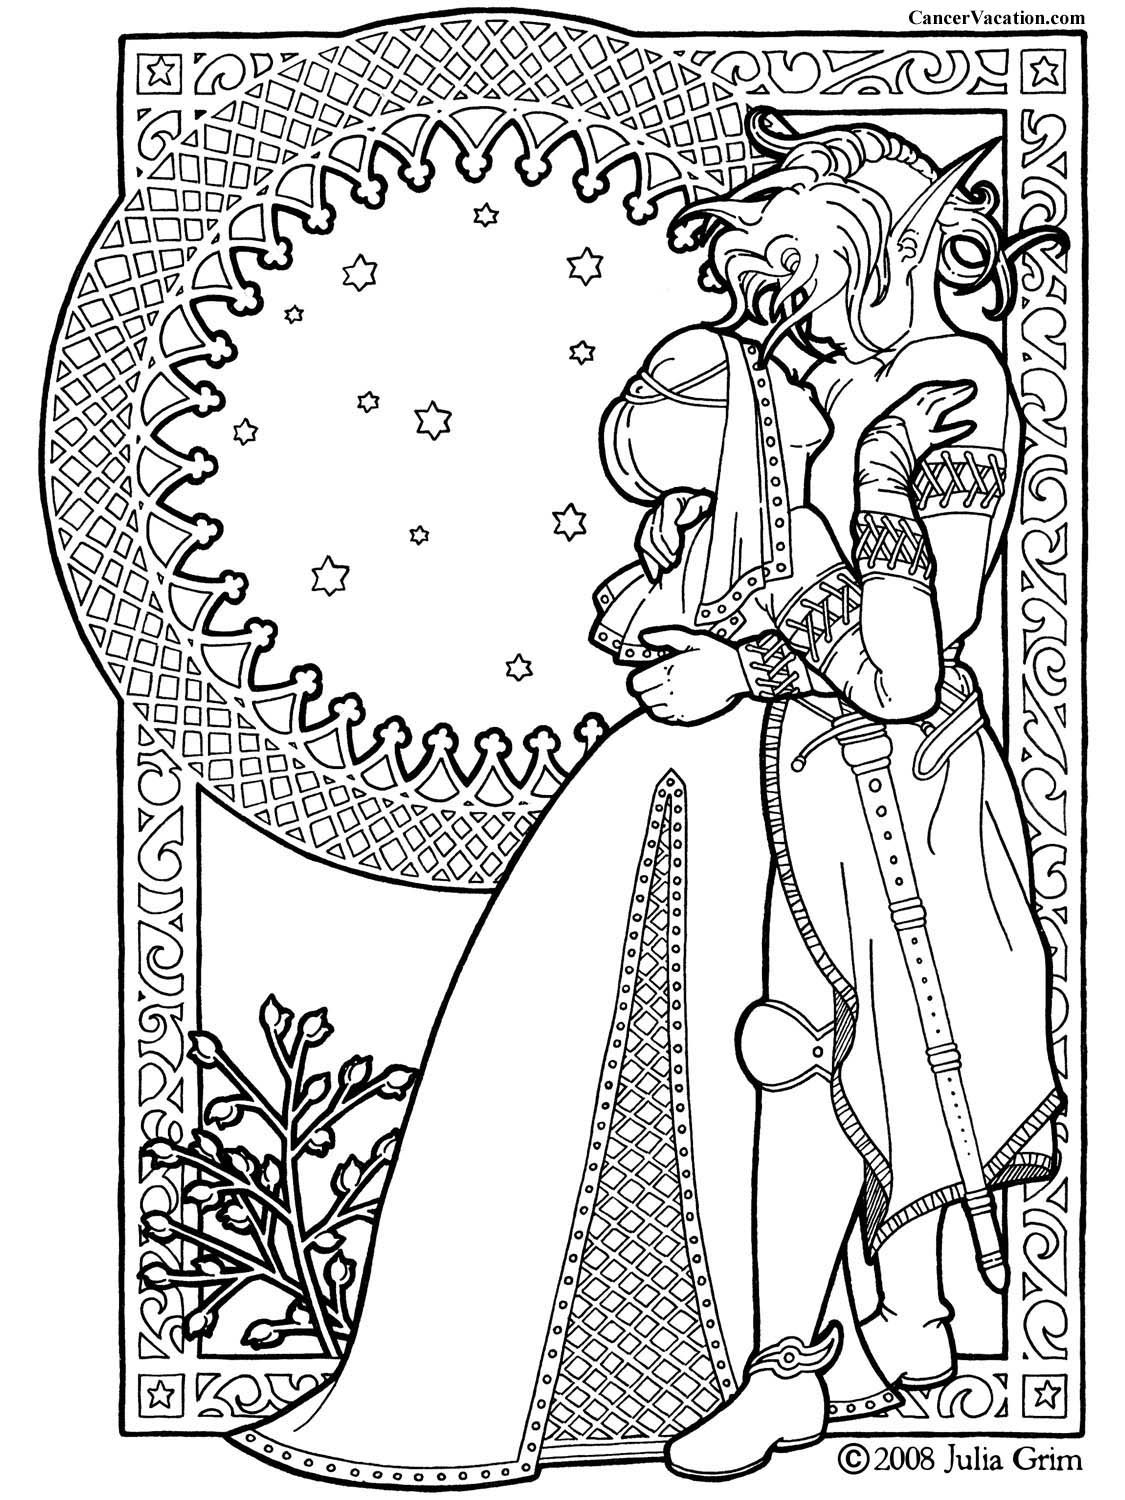 Adult Fantasy Coloring Book Cancer Vacation